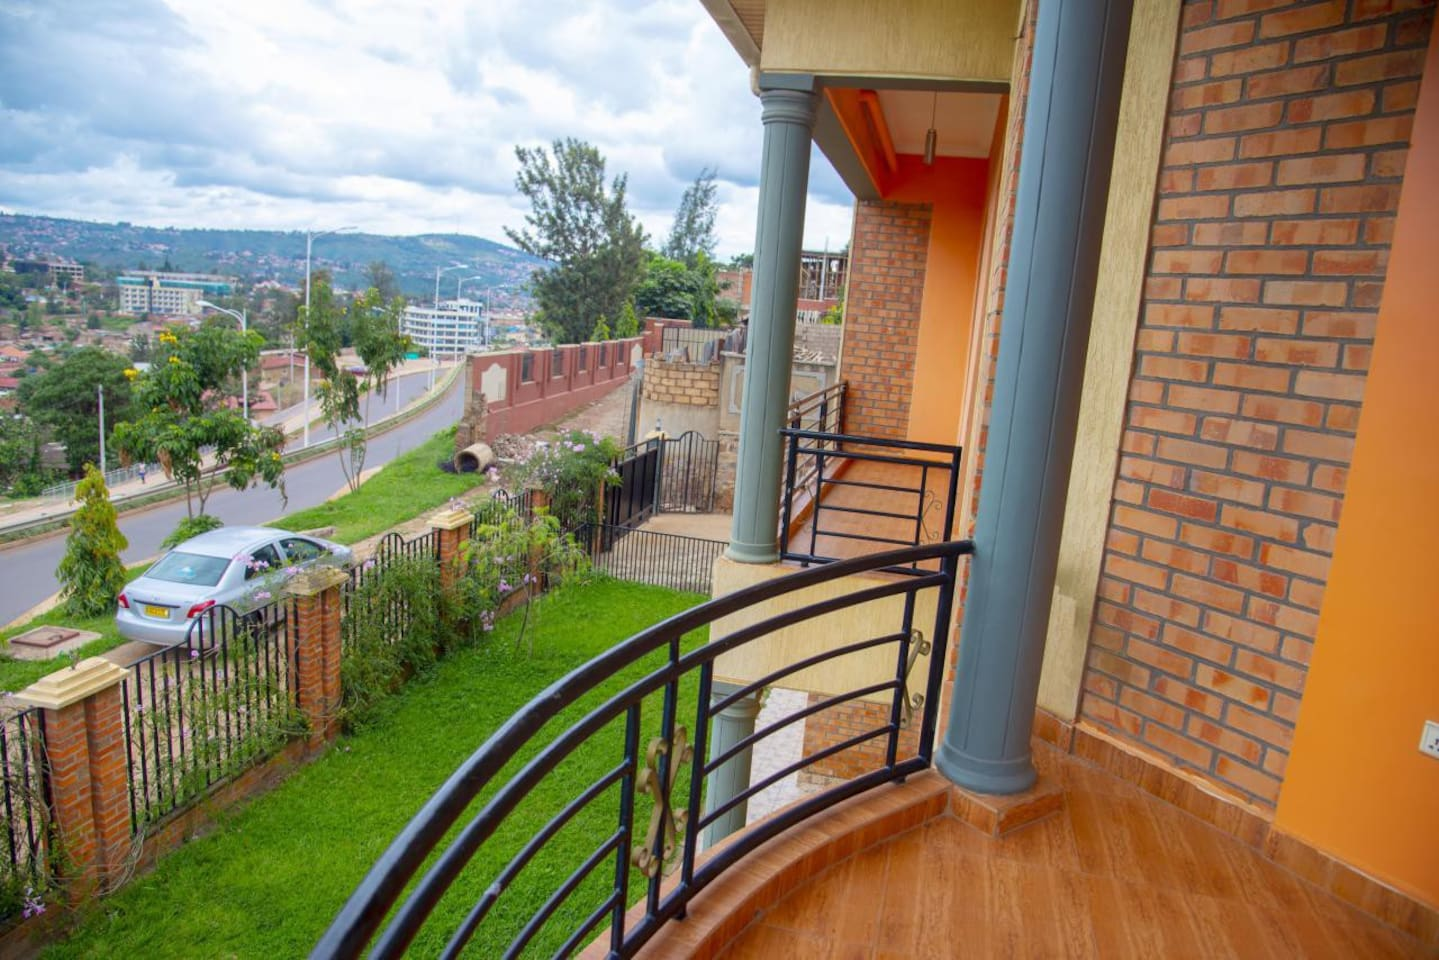 Welcome to your home away from home at kigali, beautiful. Right?